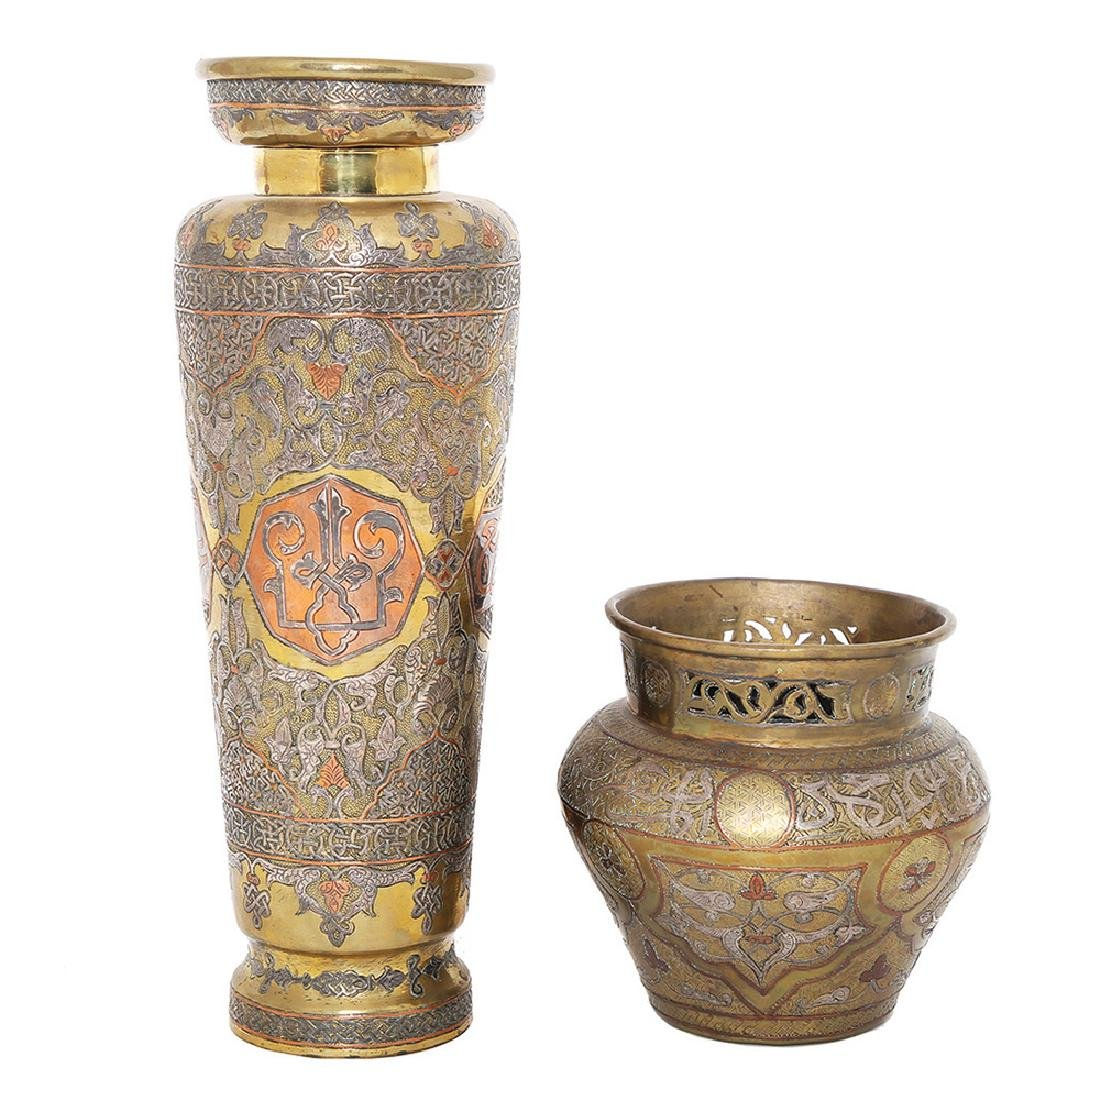 TWO ISLAMIC DAMASCENED SILVER AND COPPER INLAID VESSELS